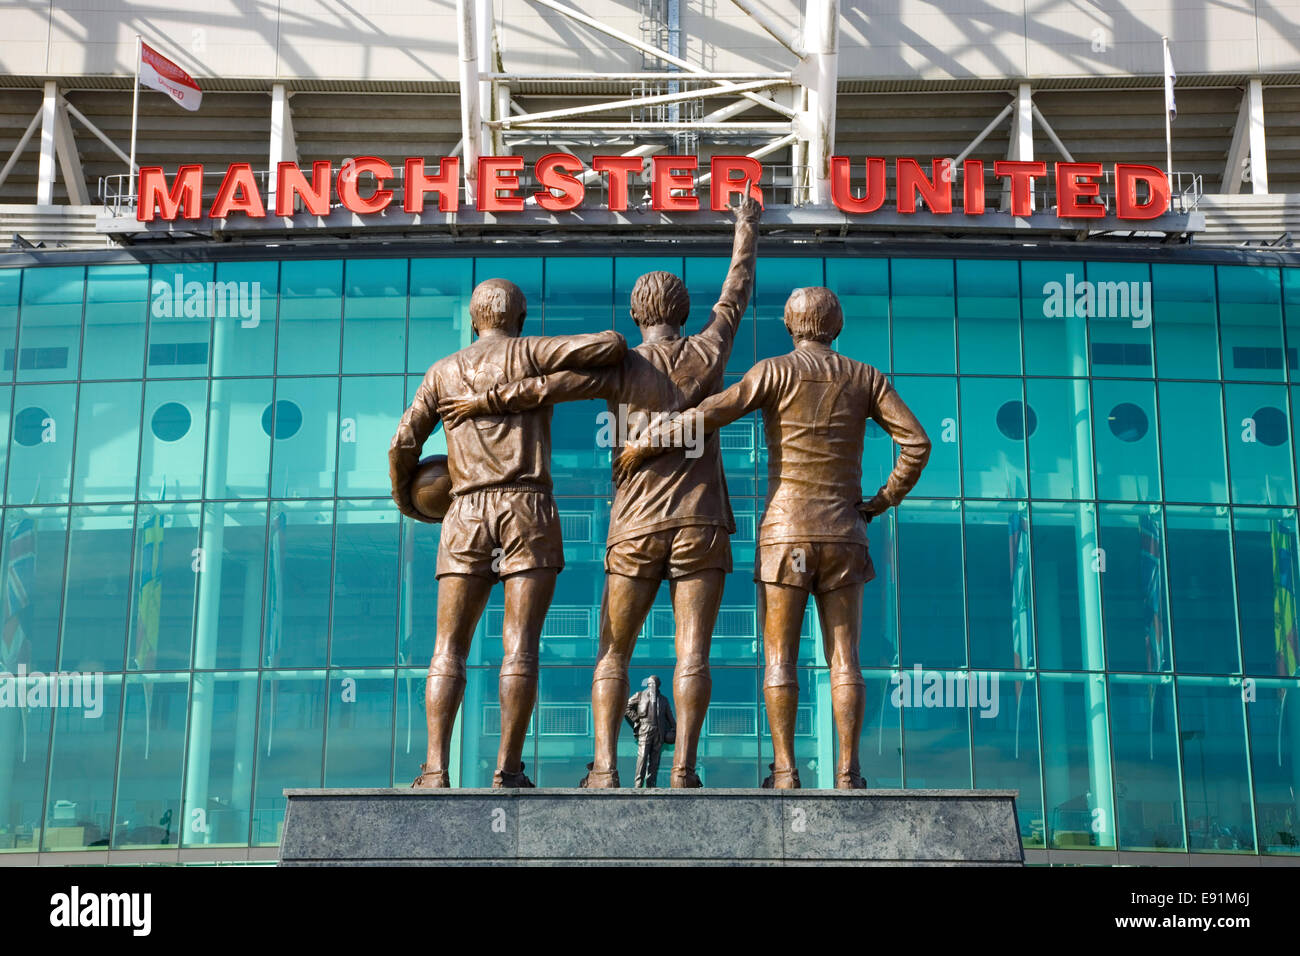 Old Trafford, Manchester, Greater Manchester, England. United Trinity statue outside the Manchester United football - Stock Image